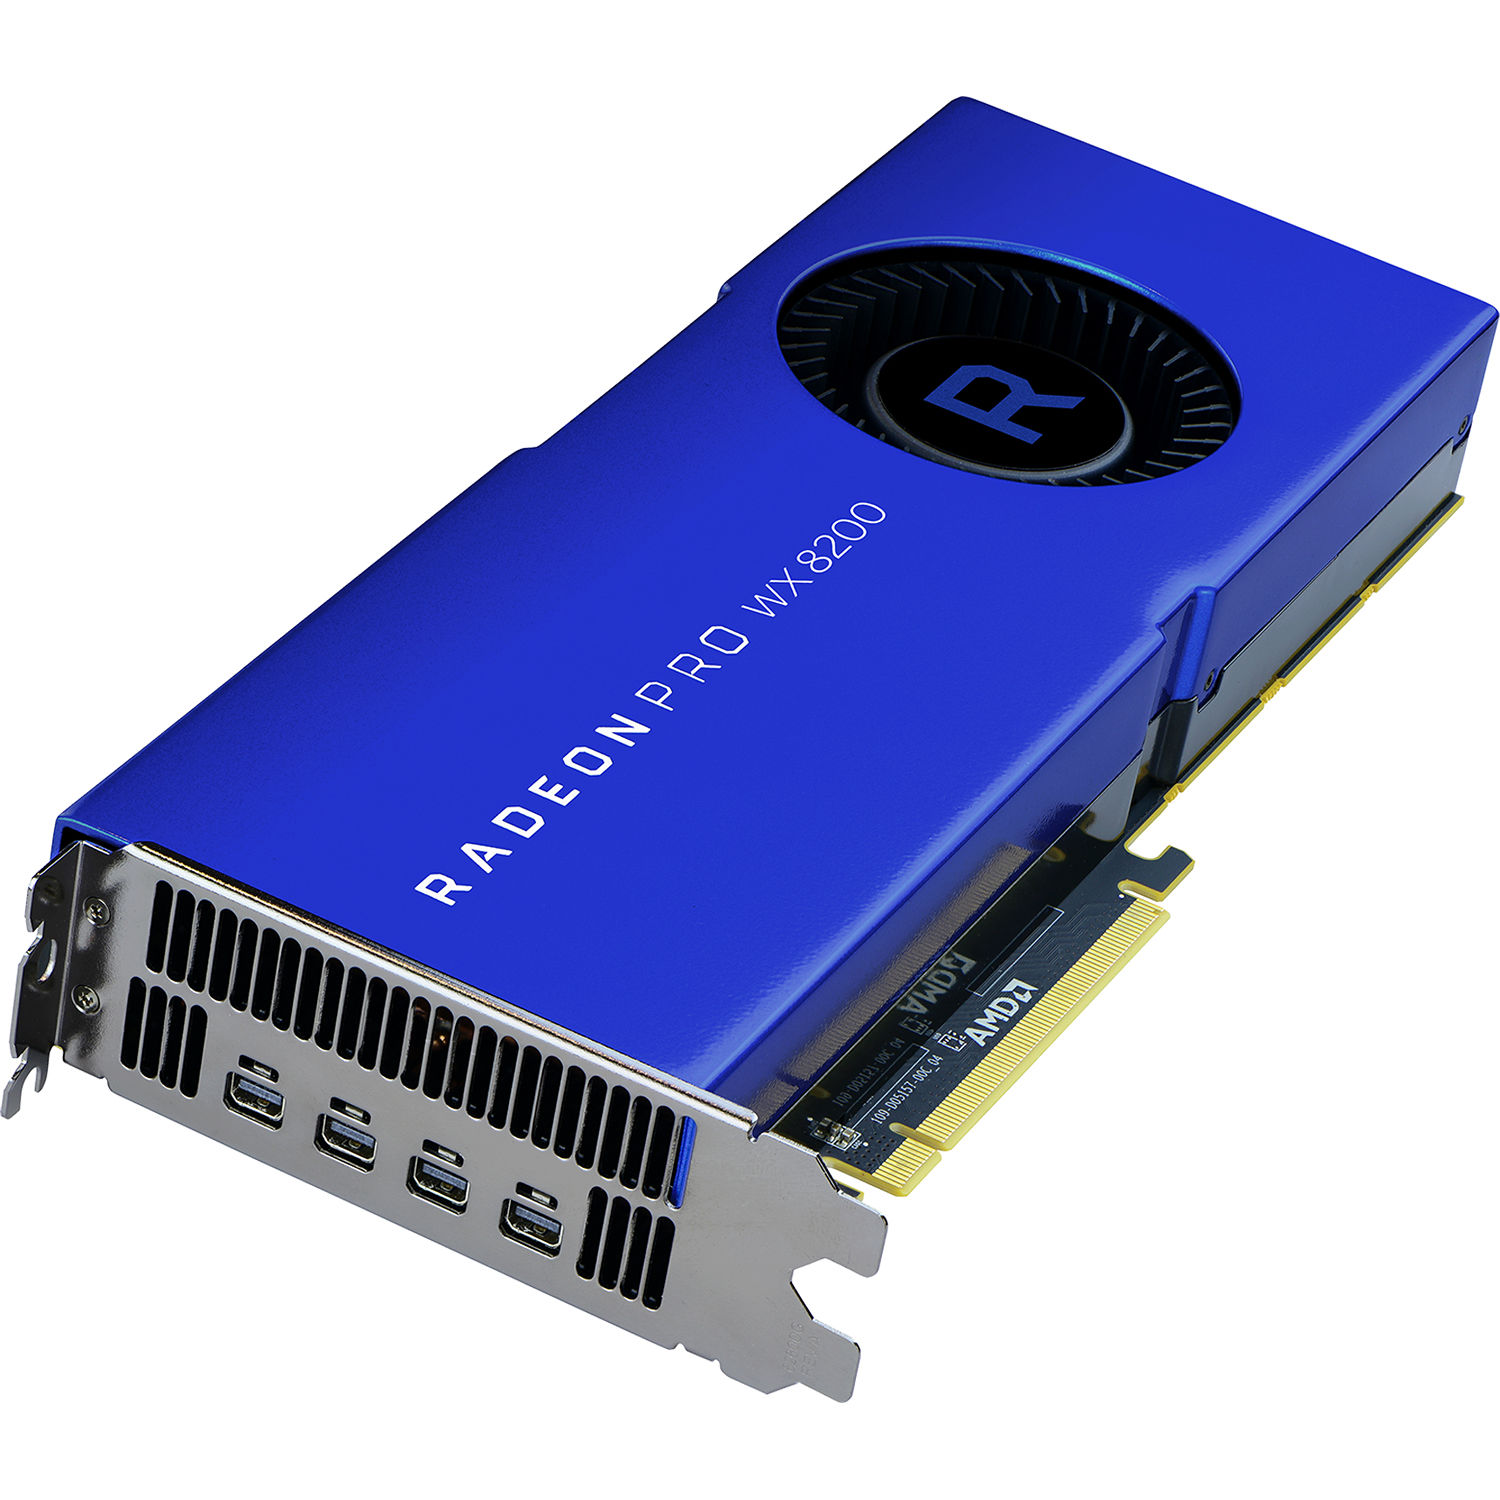 AMD Radeon Pro WX 8200 Graphics Card